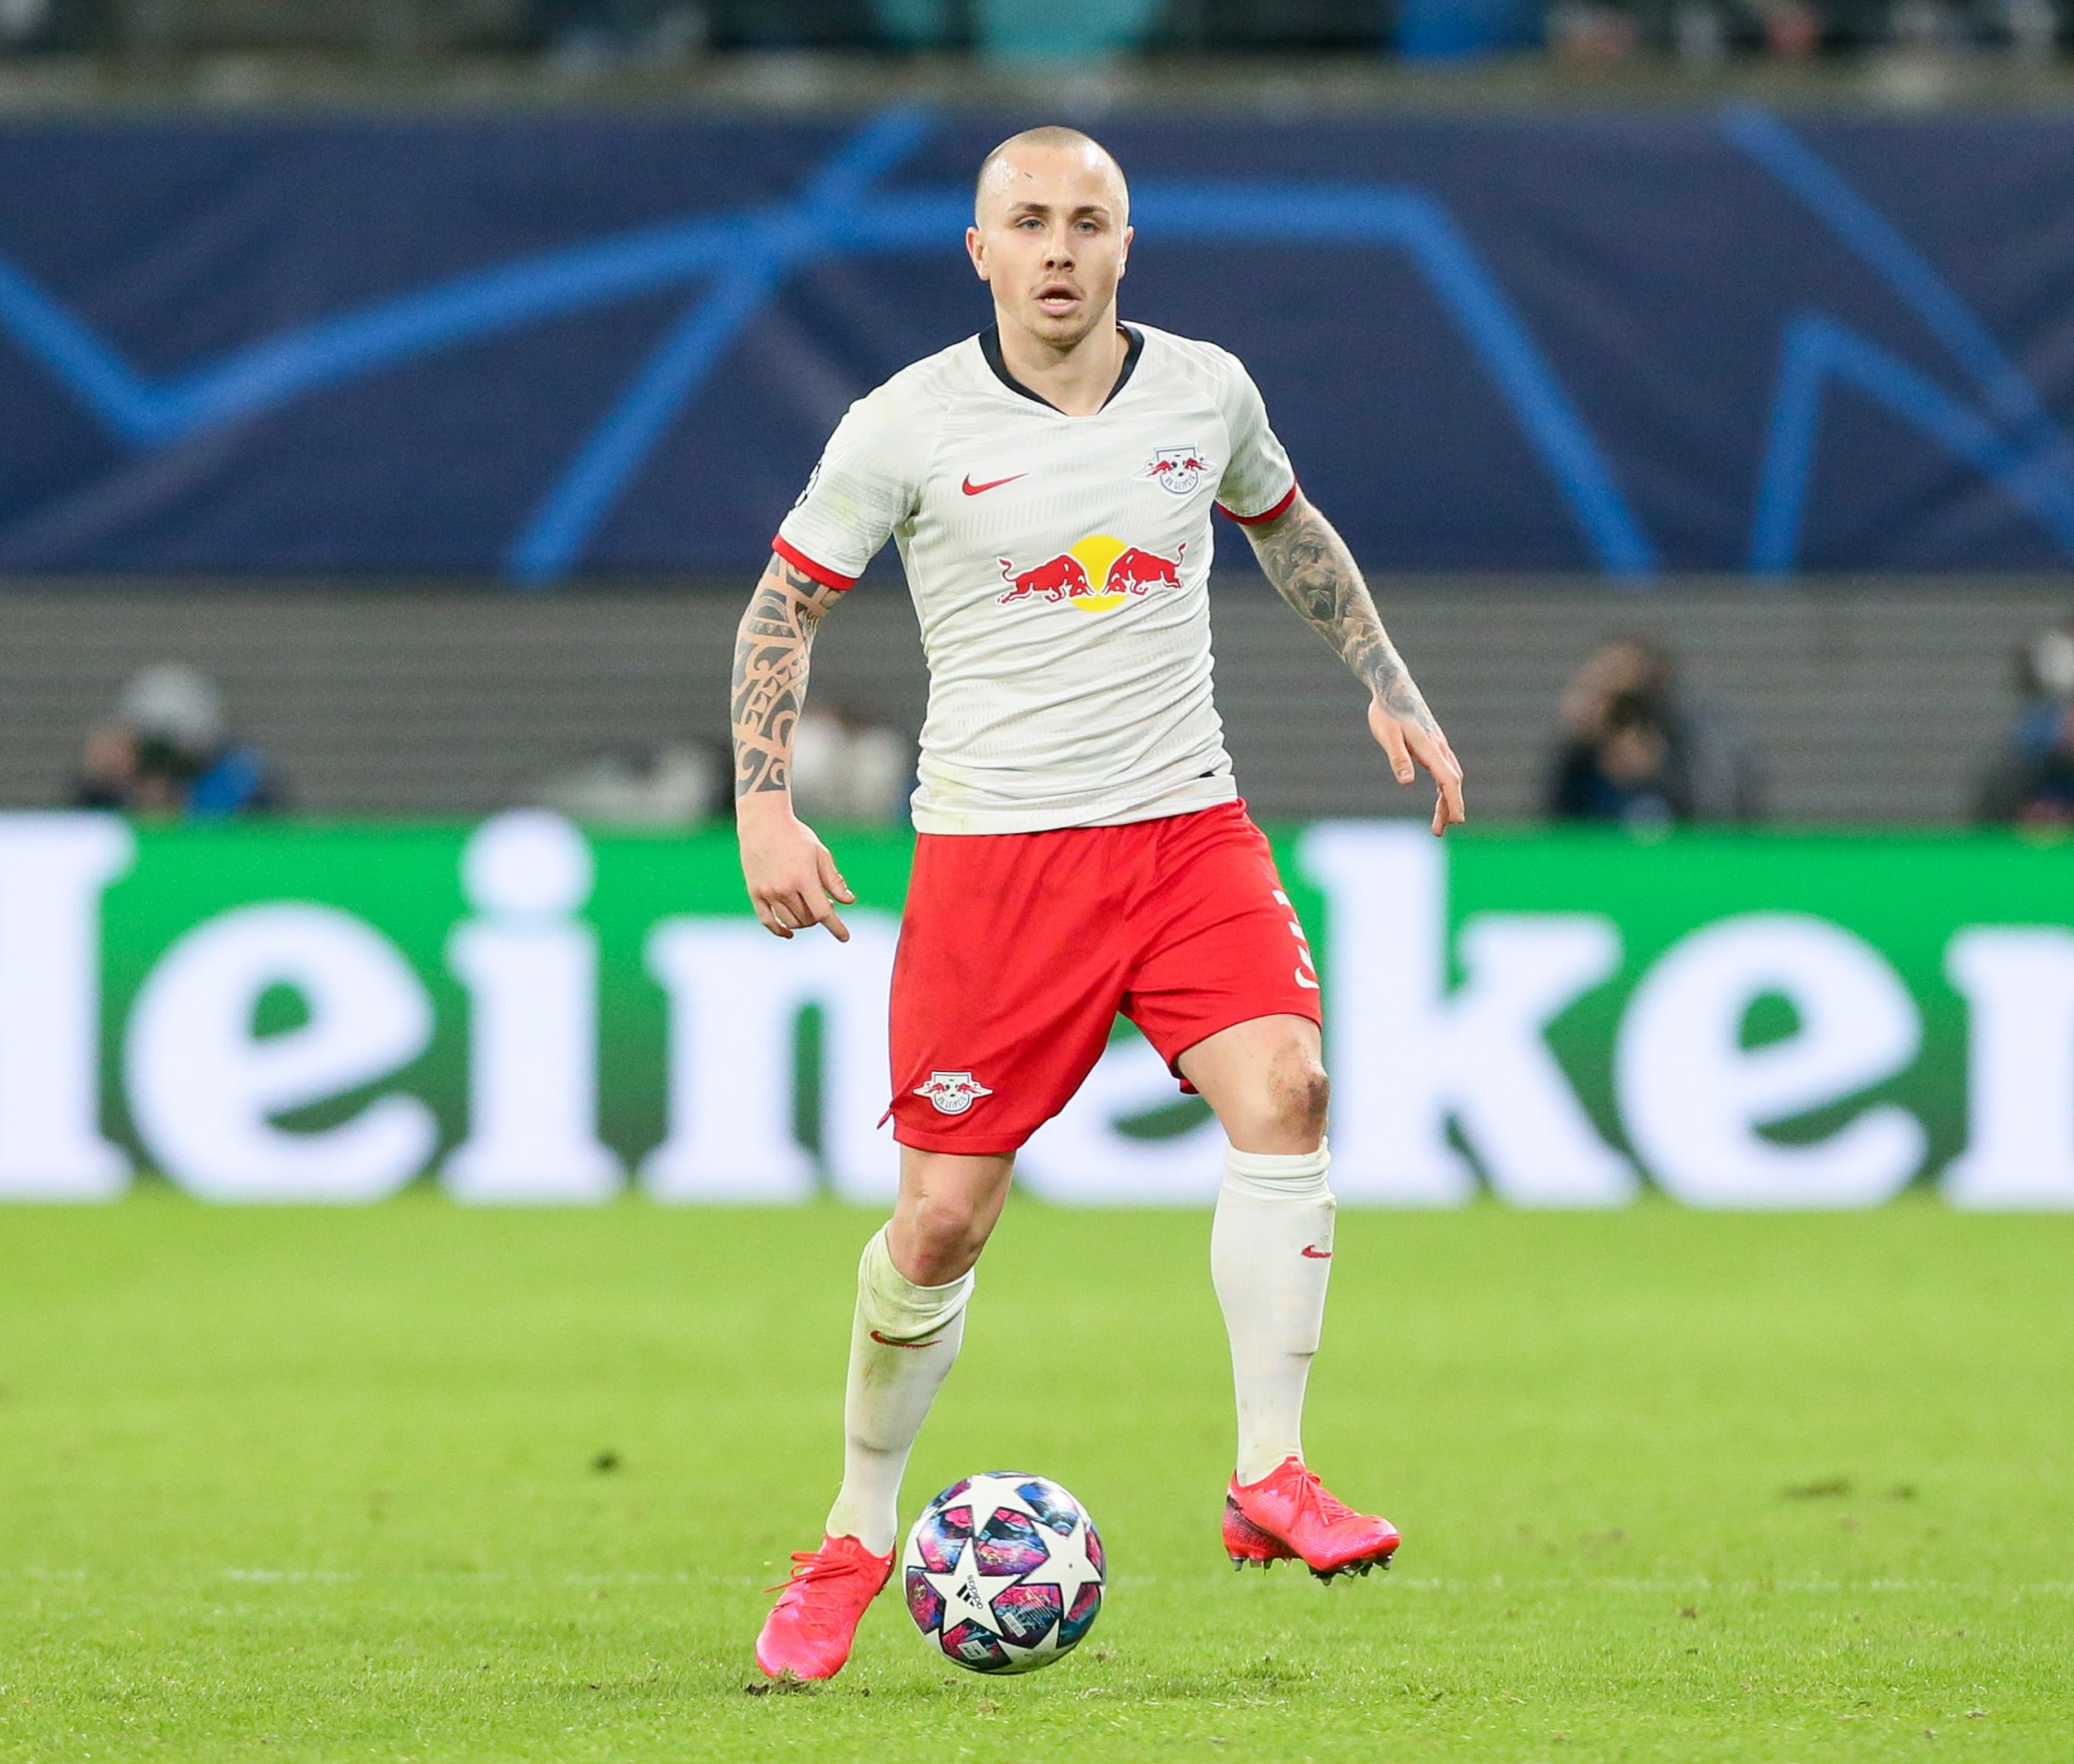 Rb Leipzig Boss Provides Update On Schick Angelino And Ampadu